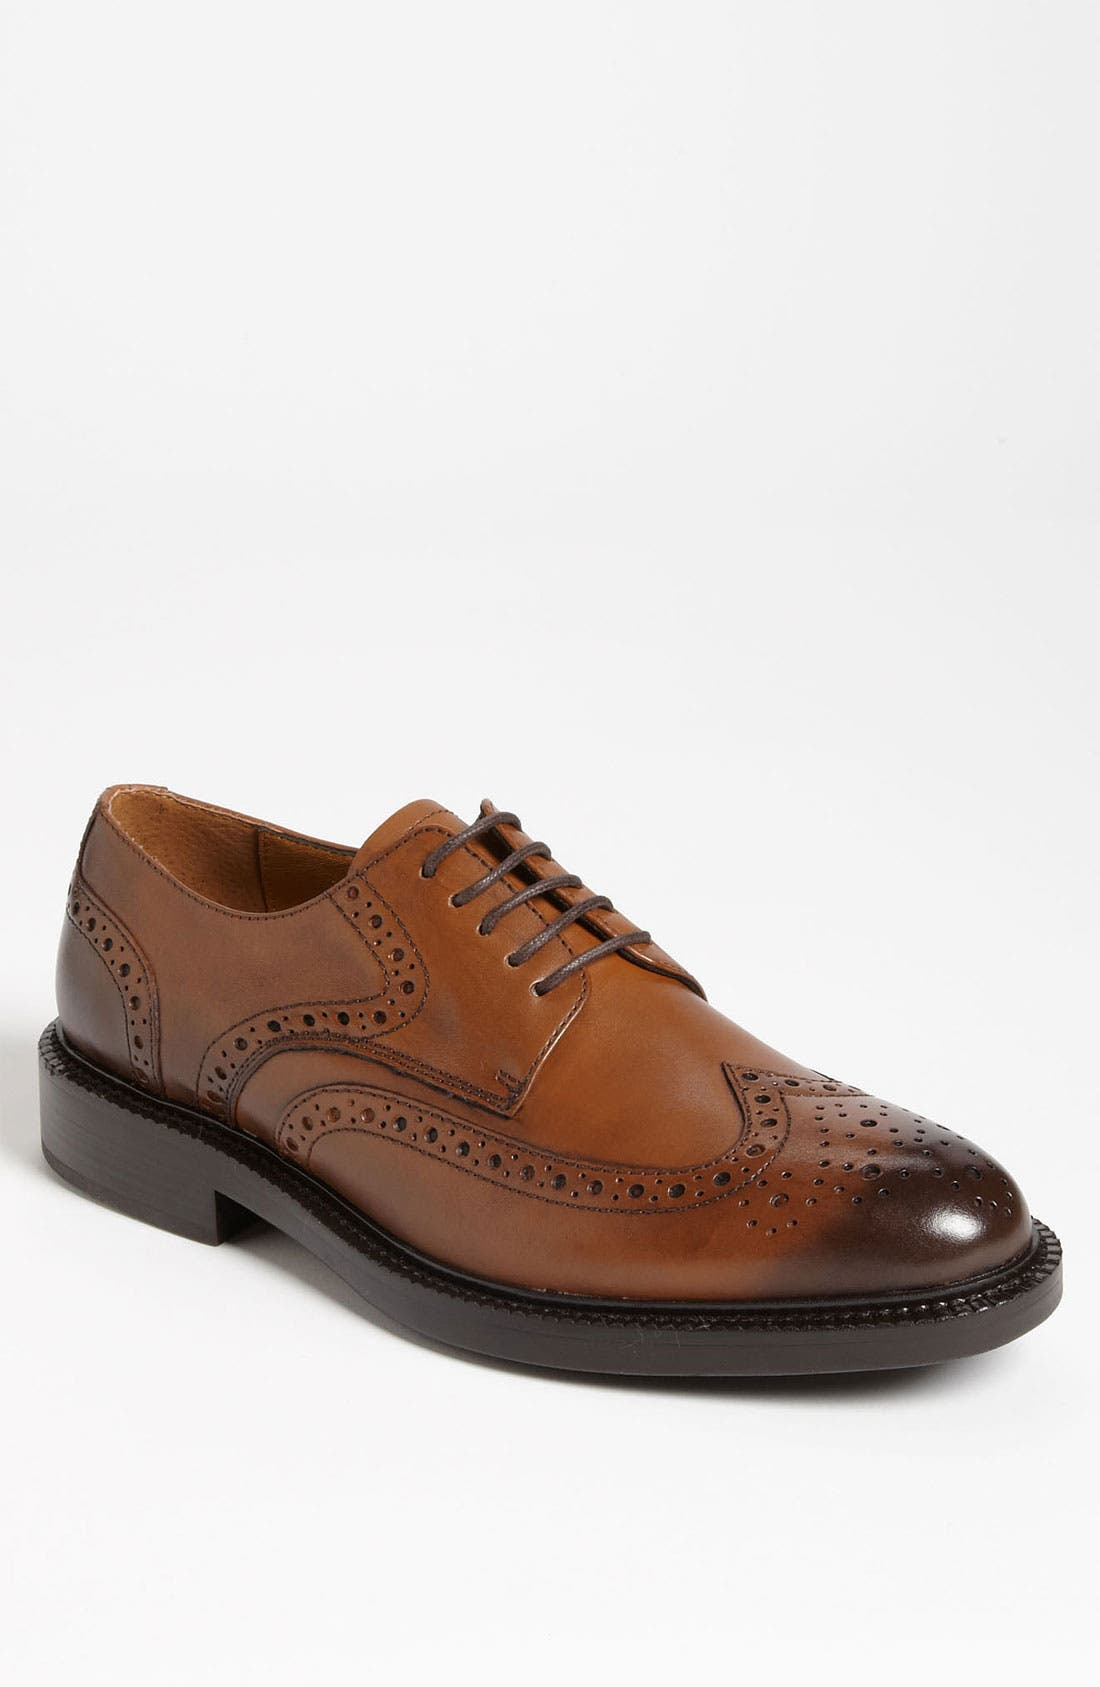 Alternate Image 1 Selected - 1901 'Chester' Wingtip